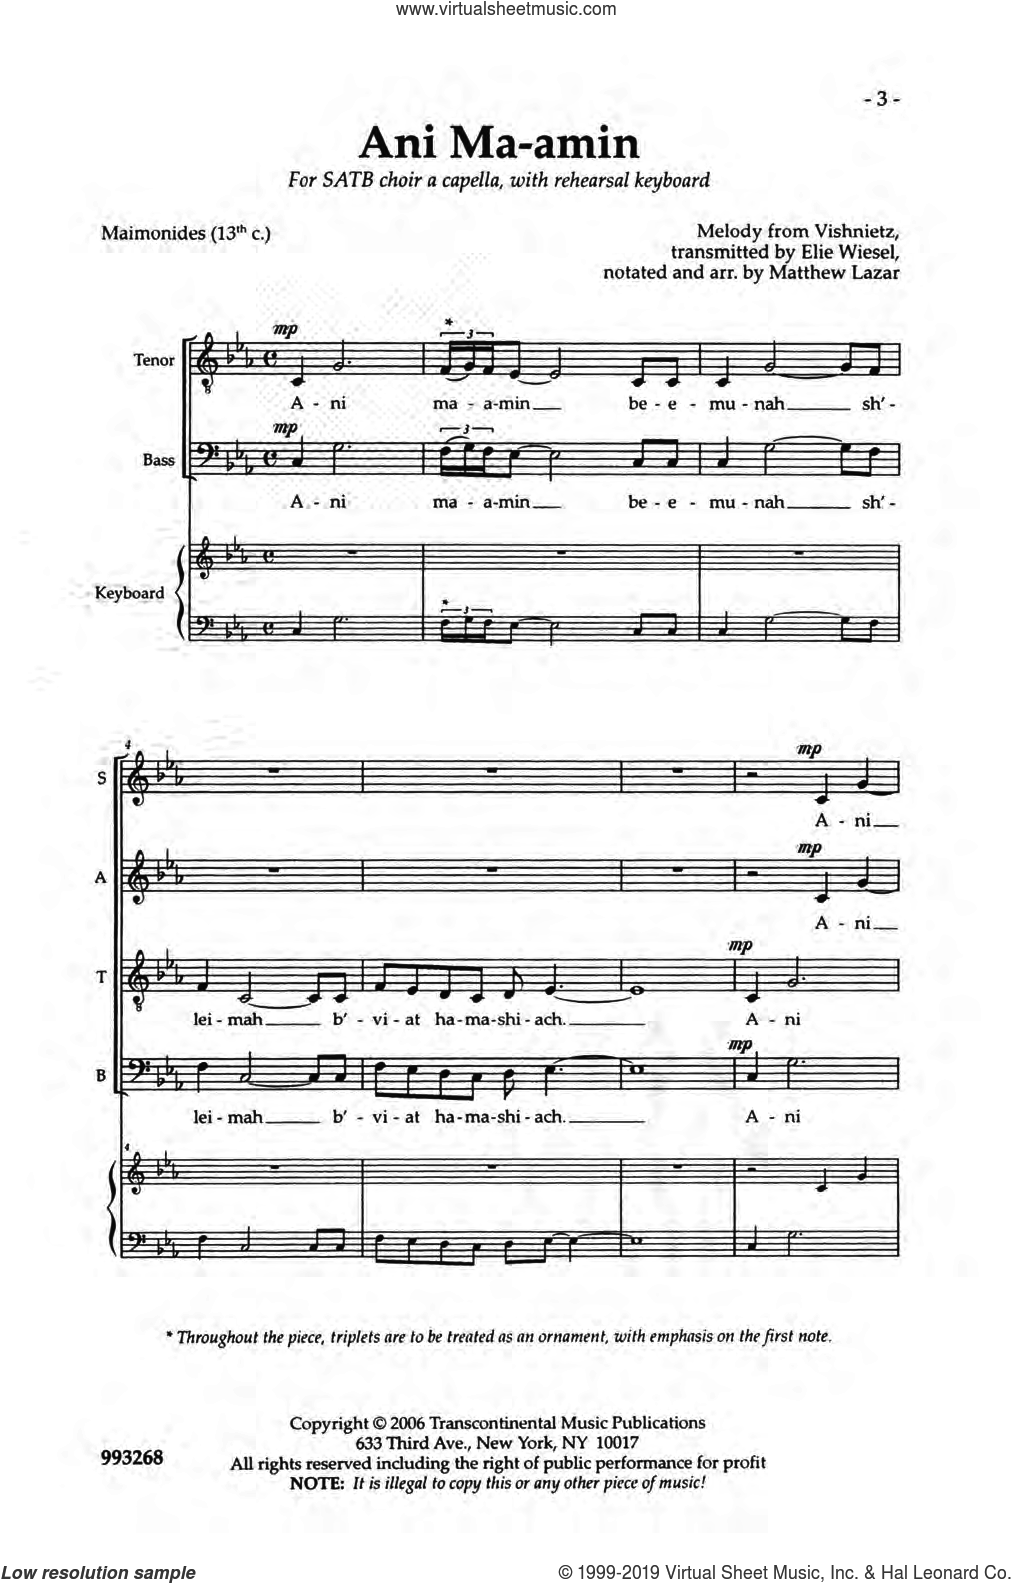 Ani Ma-amin sheet music for choir (SATB: soprano, alto, tenor, bass) by Elie Wisel, Maimonides and Matthew Lazar, intermediate skill level